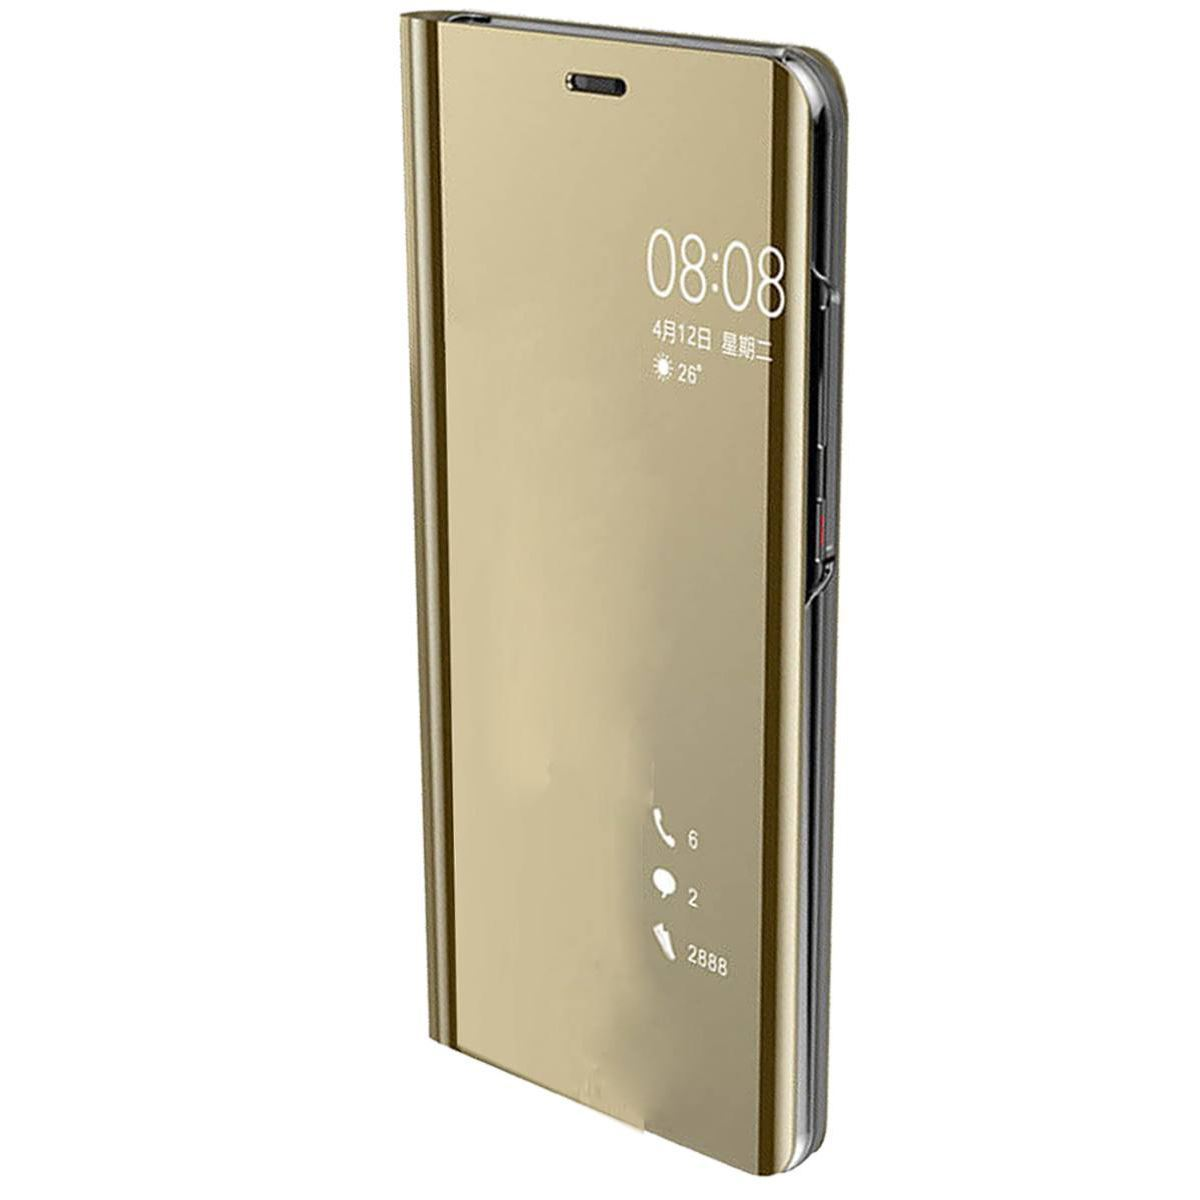 Huawei P10 Case Smart View Mirror Flip Stand Cover - Gold